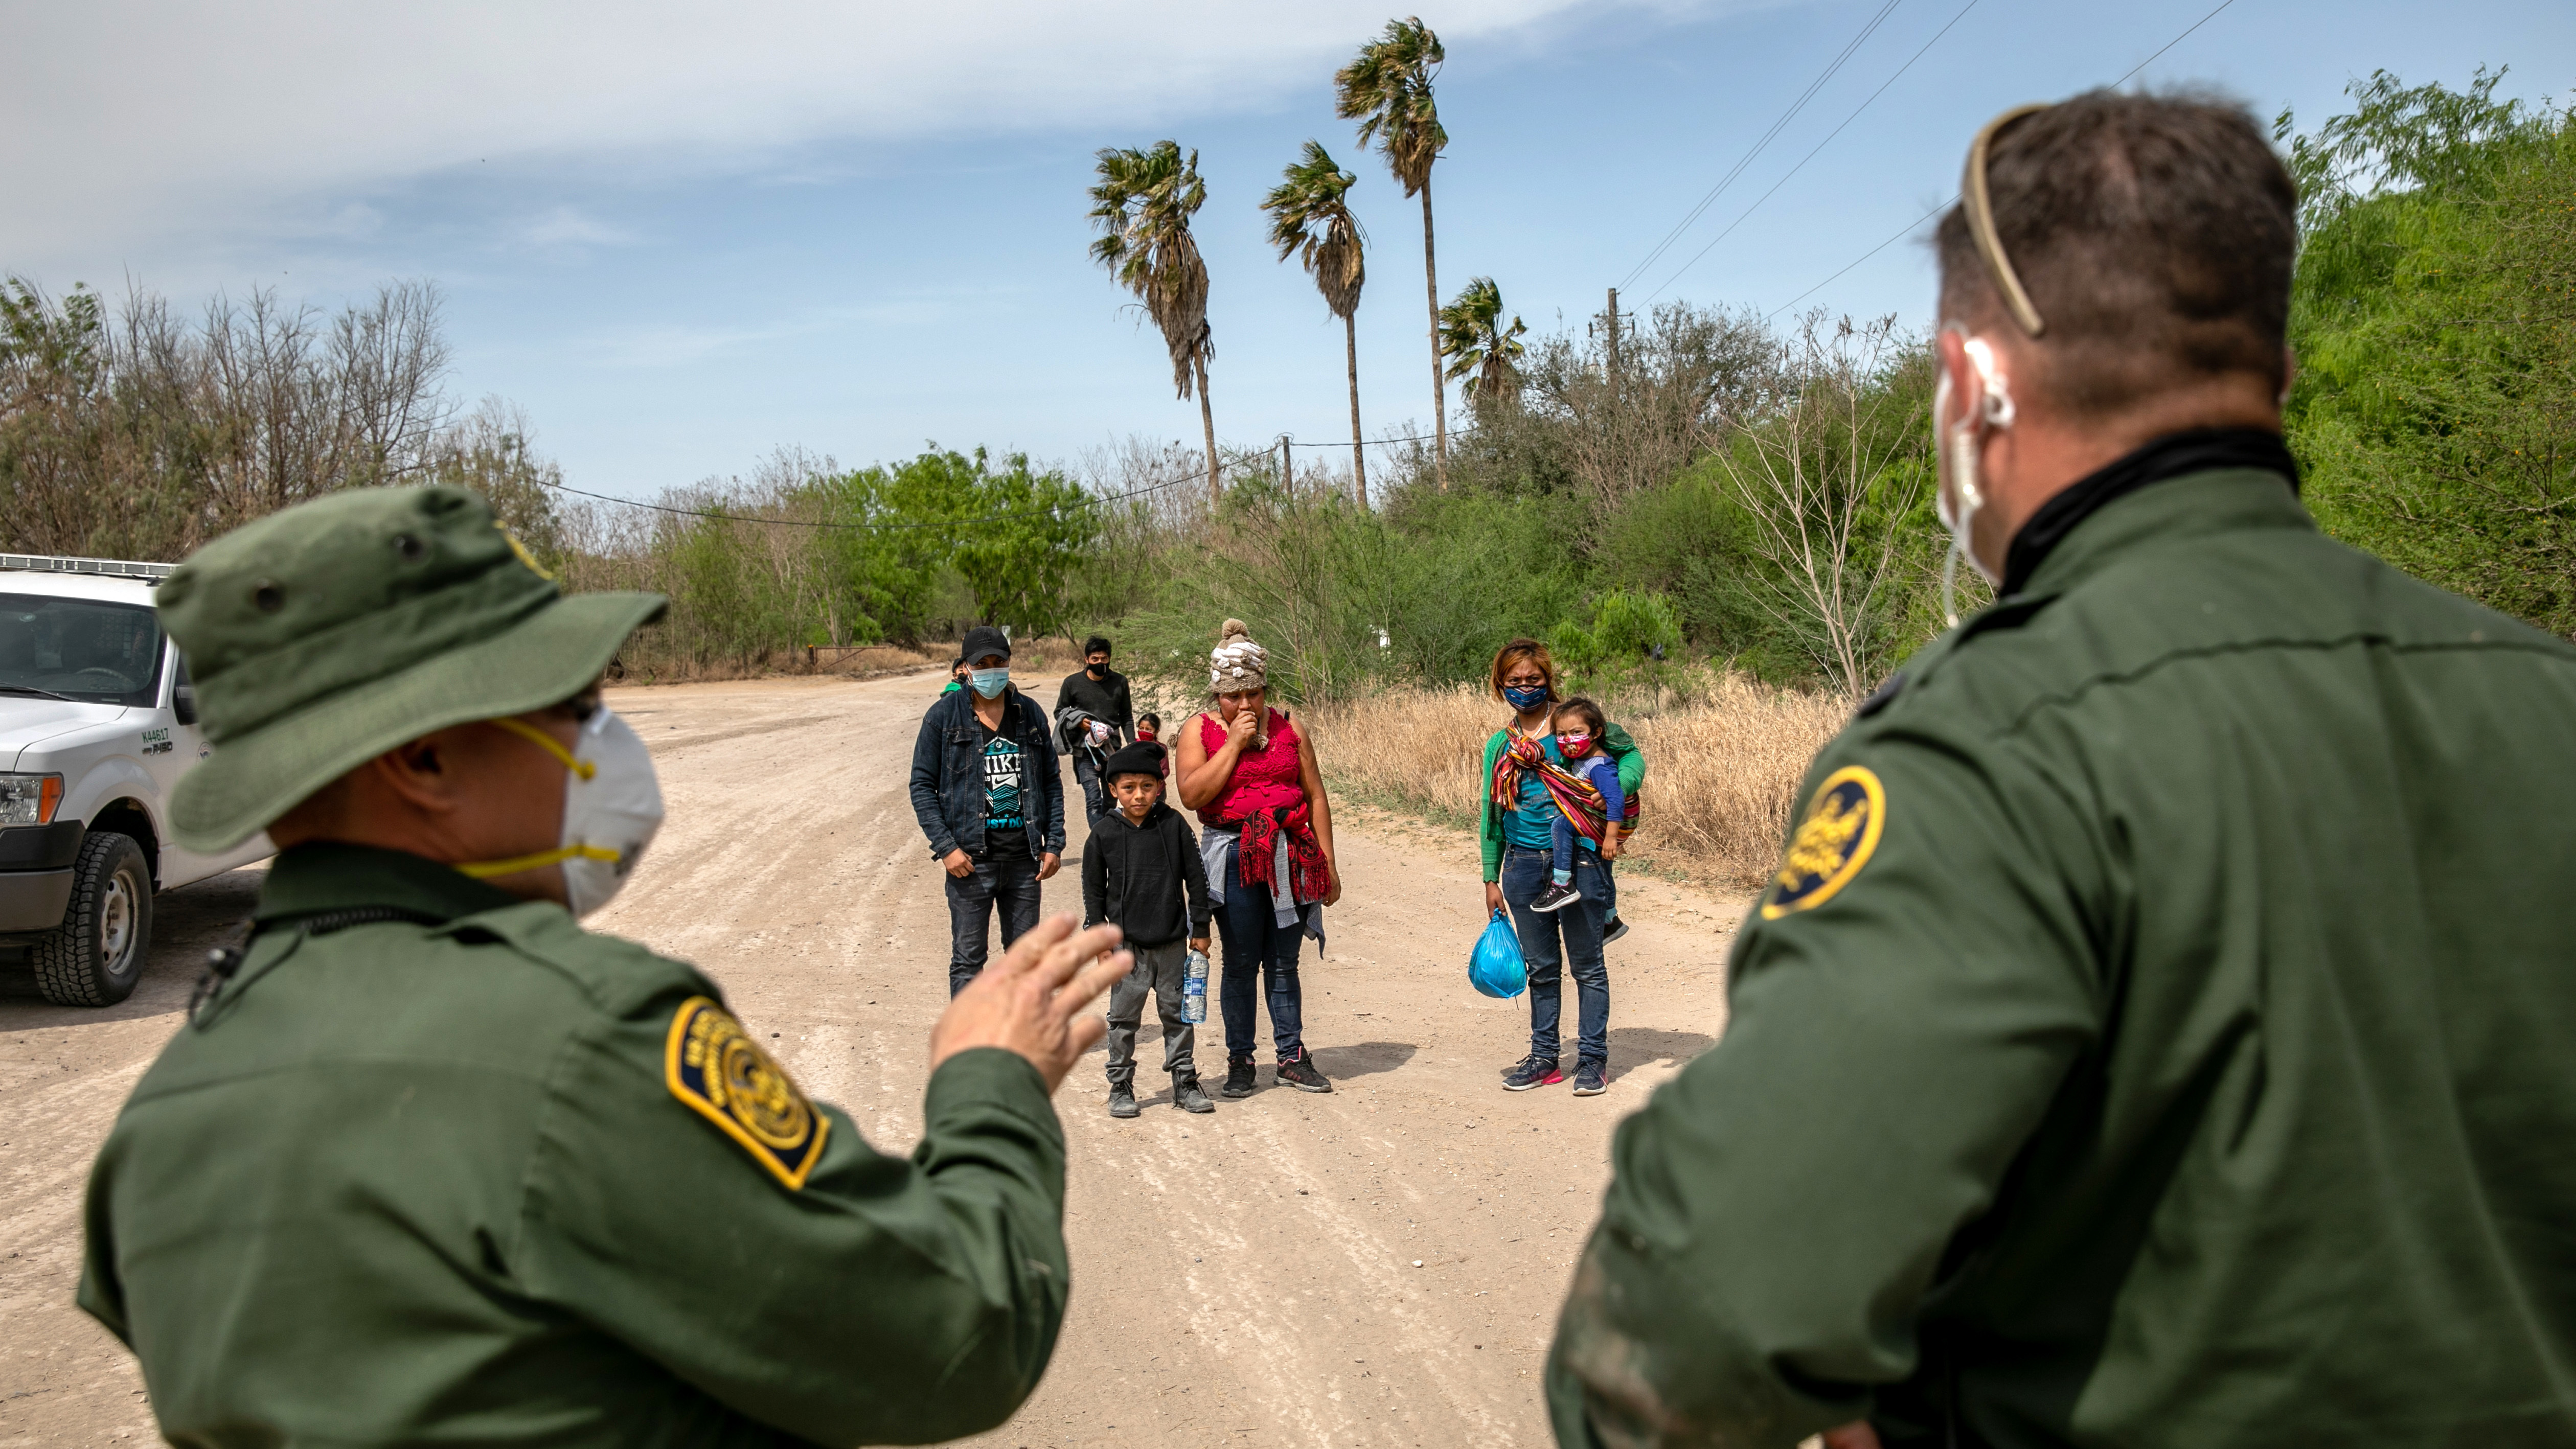 Border patrol agents and asylum-seekers in texas